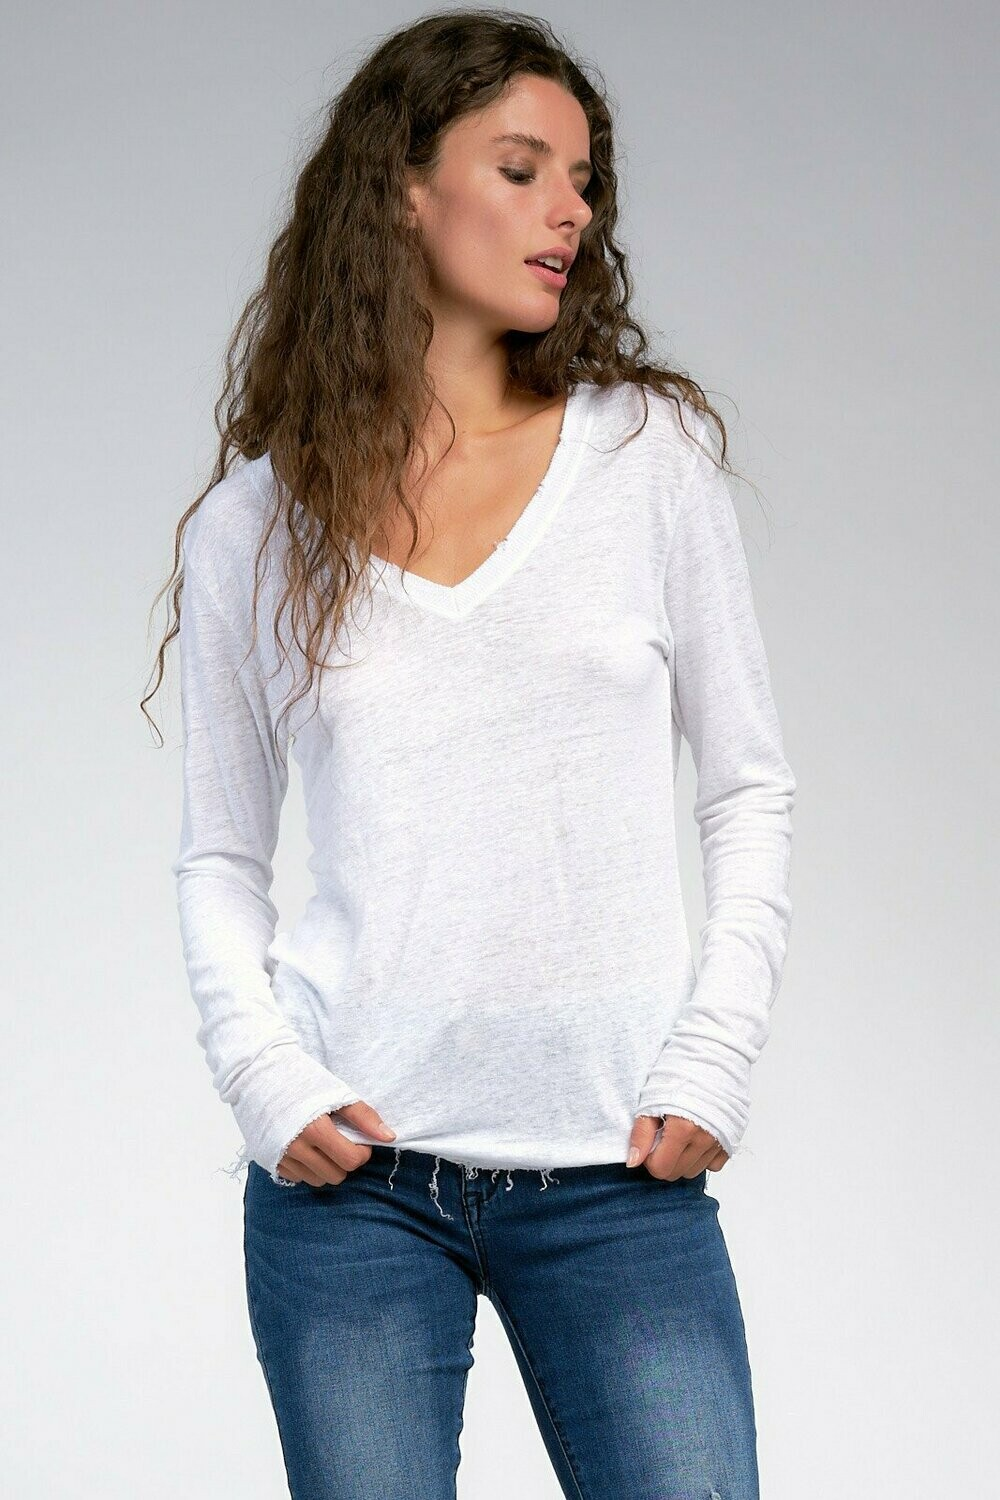 White Distressed Top